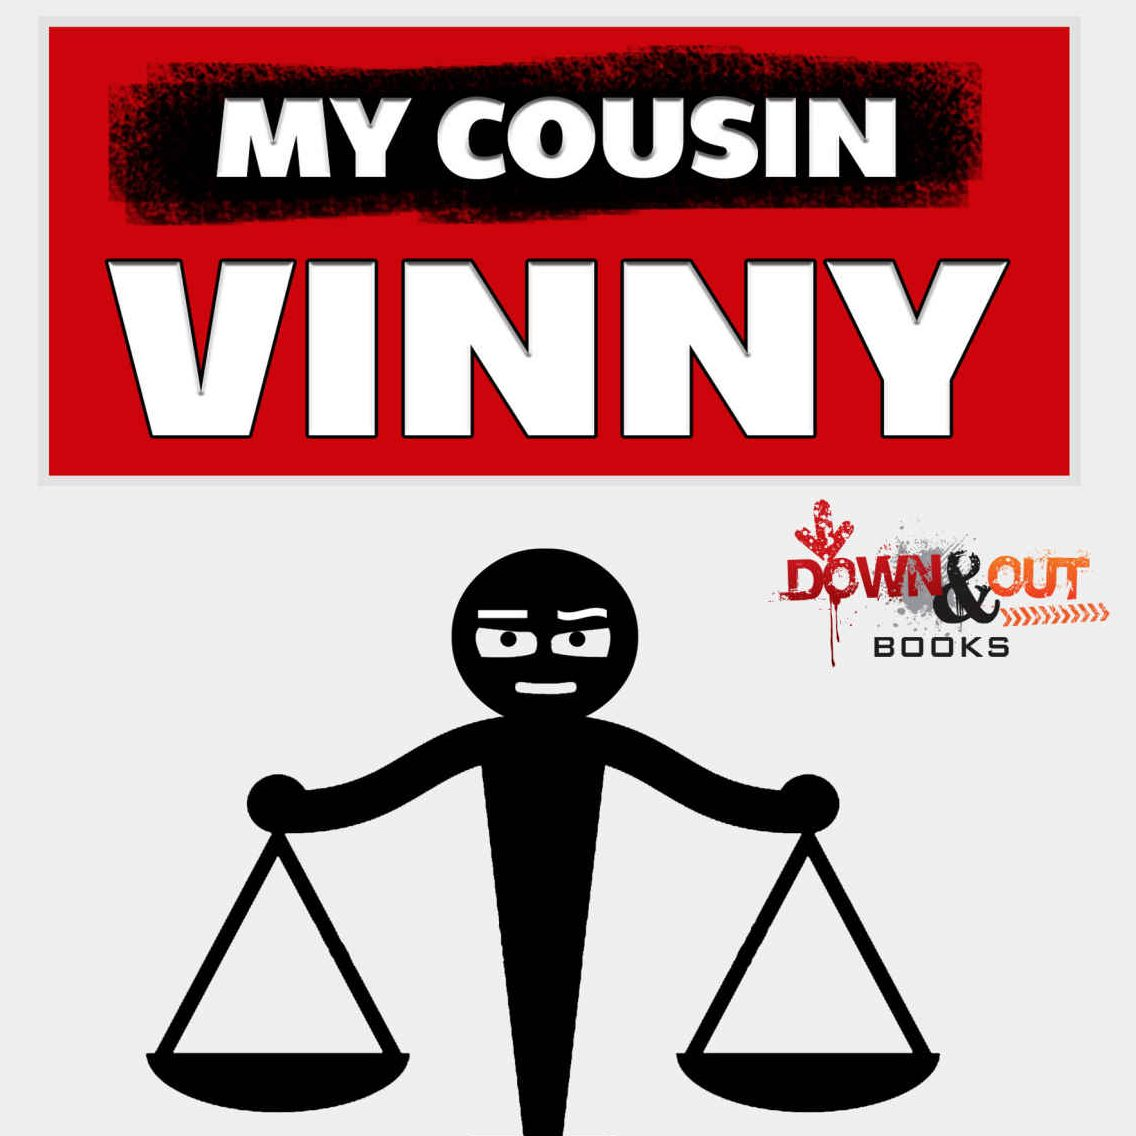 1057863478 e1600694882103 20 Fun Facts About The Hilarious My Cousin Vinny